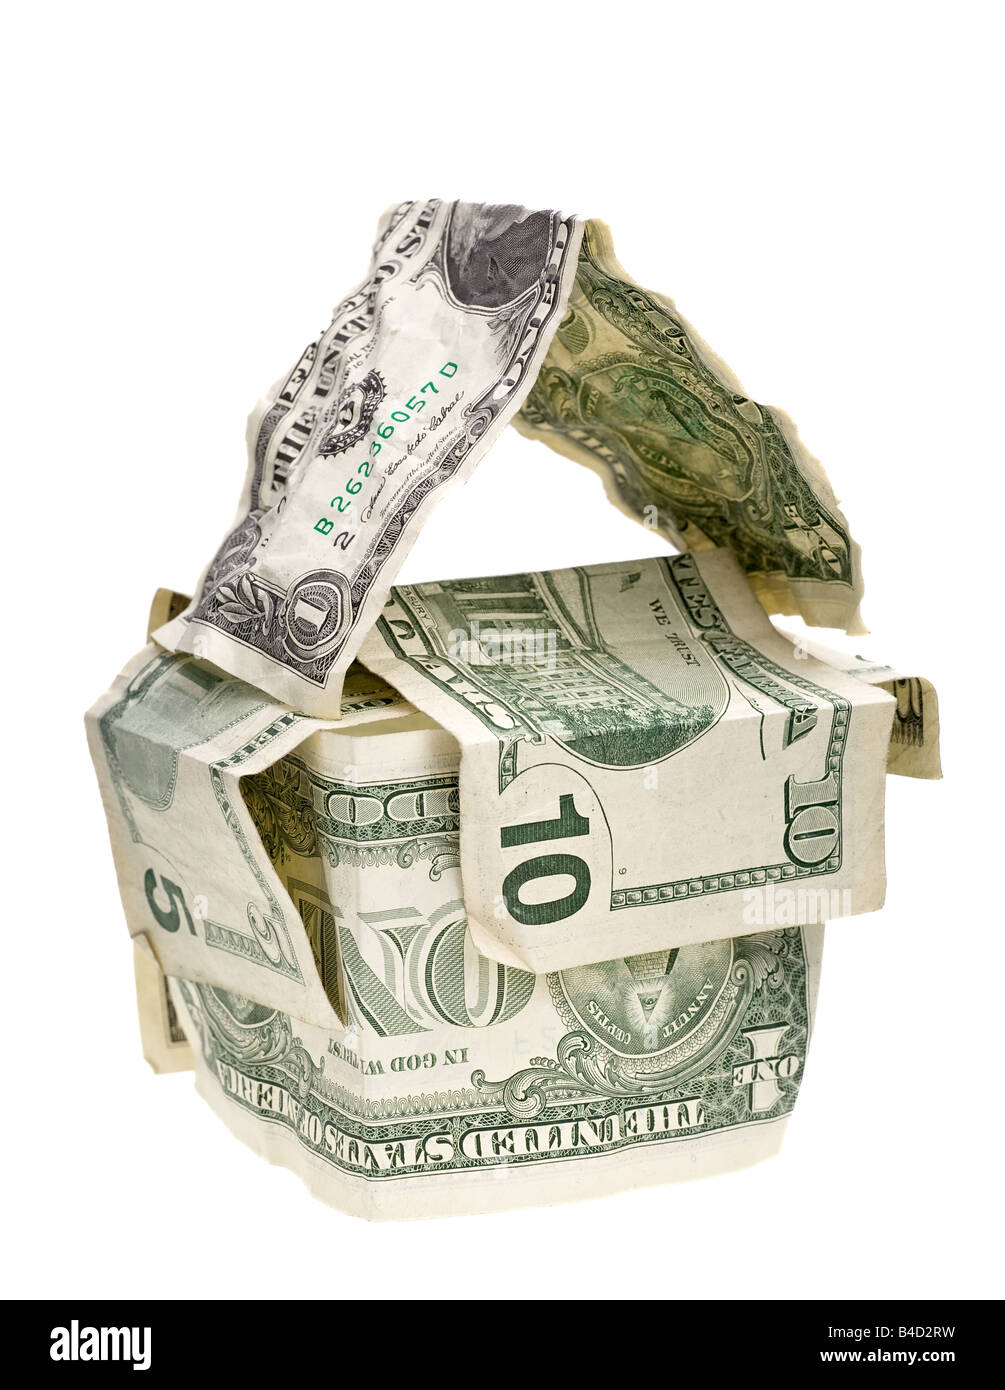 crumpled money stockfotos crumpled money bilder alamy. Black Bedroom Furniture Sets. Home Design Ideas